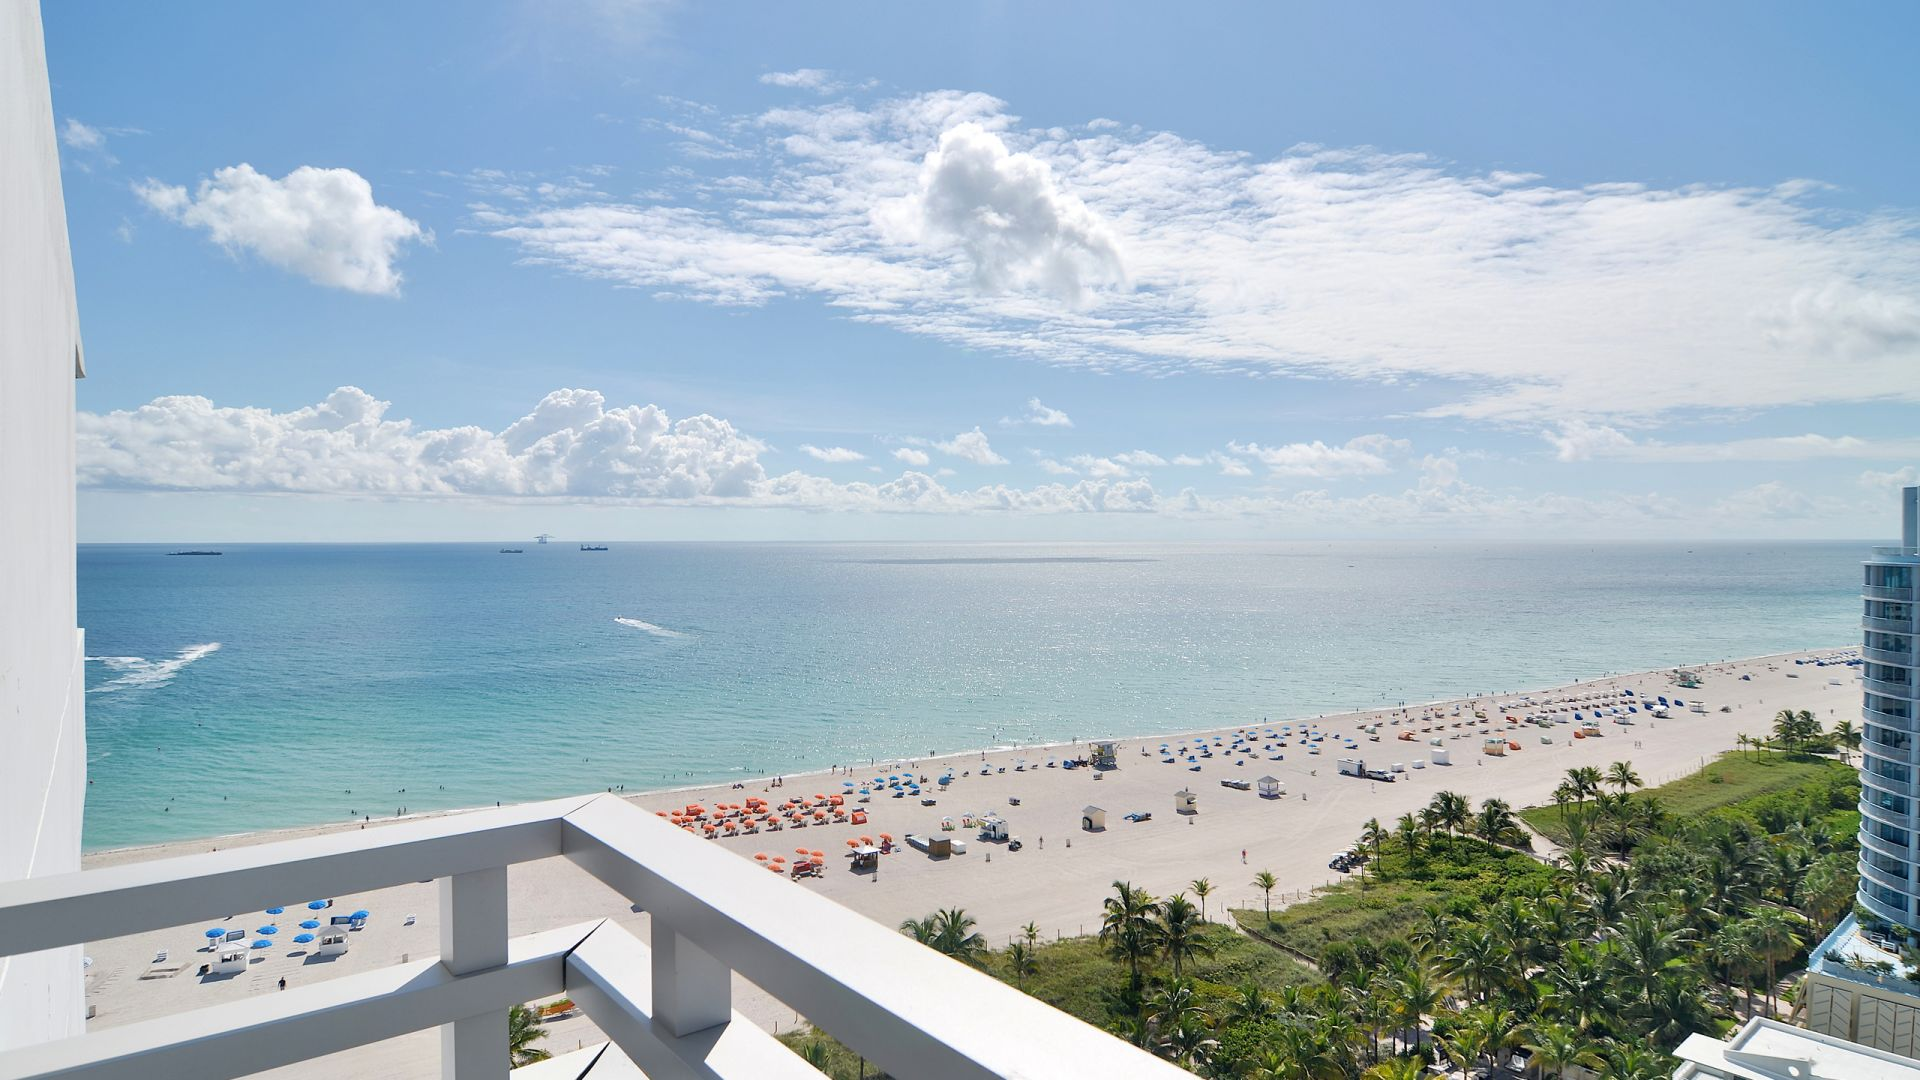 South Beach View From Guestroom Balcony | Loews Miami Beach Hotel